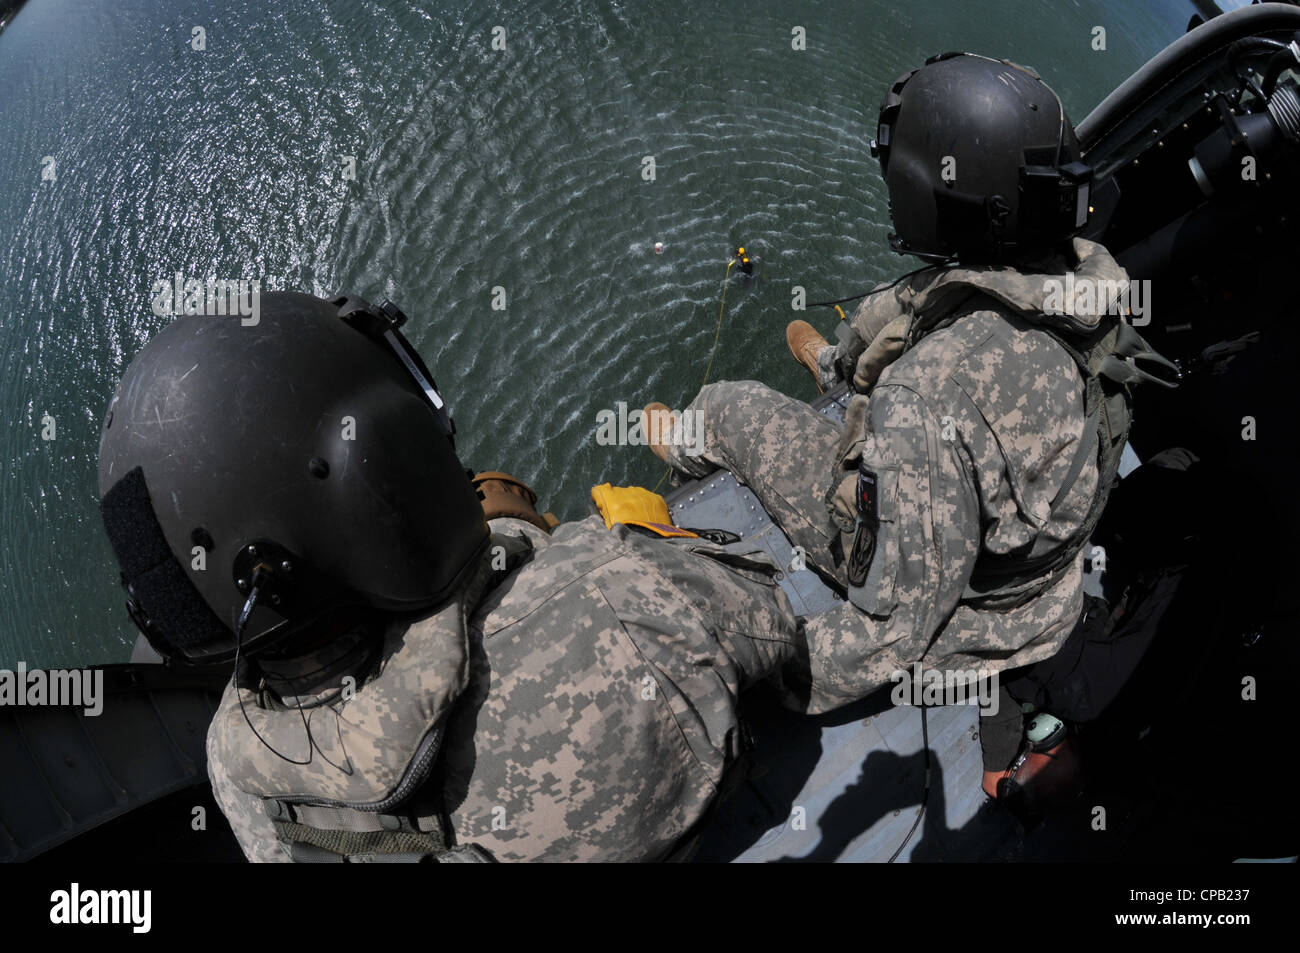 Sgt. 1st Class Robin McDaniel (left) and Sgt. Charles sit ready in a North Carolina Army National Guard UH-60 Black - Stock Image